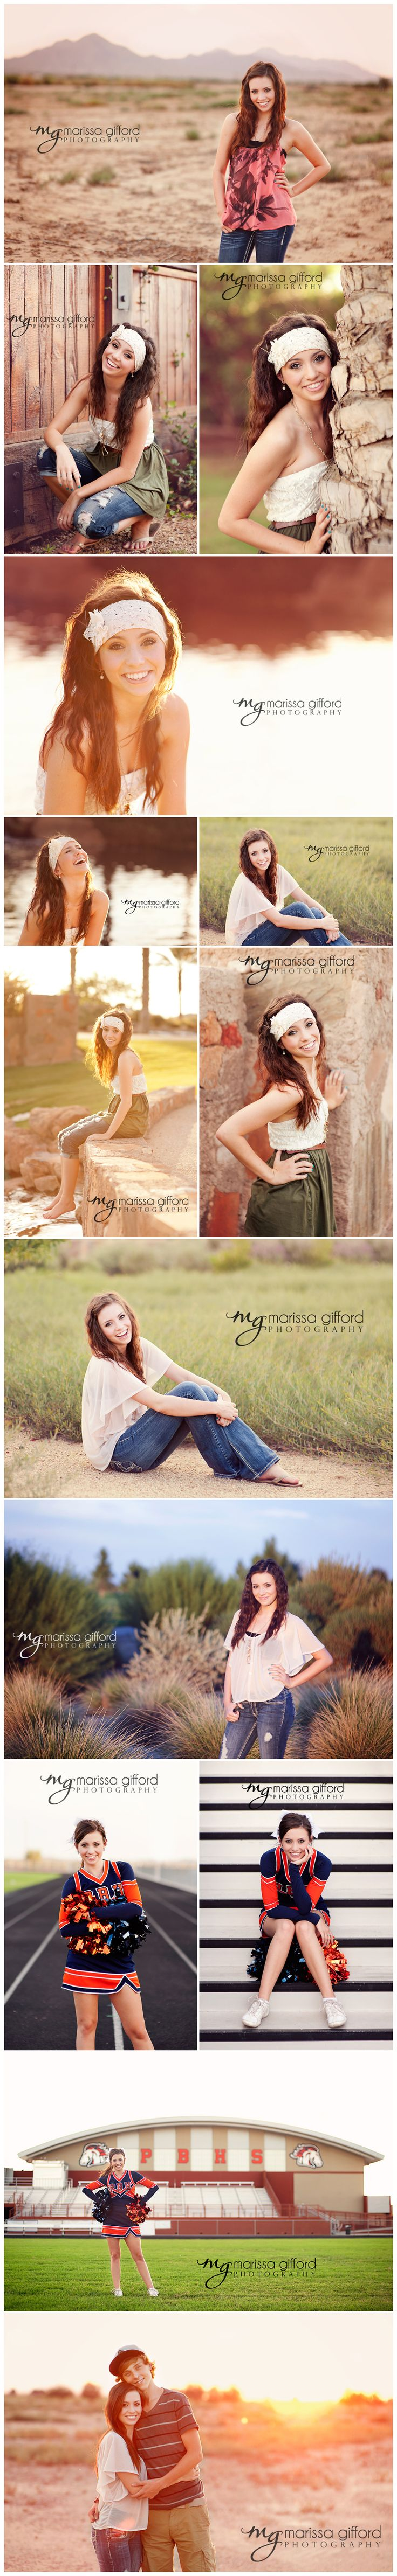 Senior Girl Photography - Marissa Gifford Photography -I'm seriously in love with how gorgeous these all turned out..